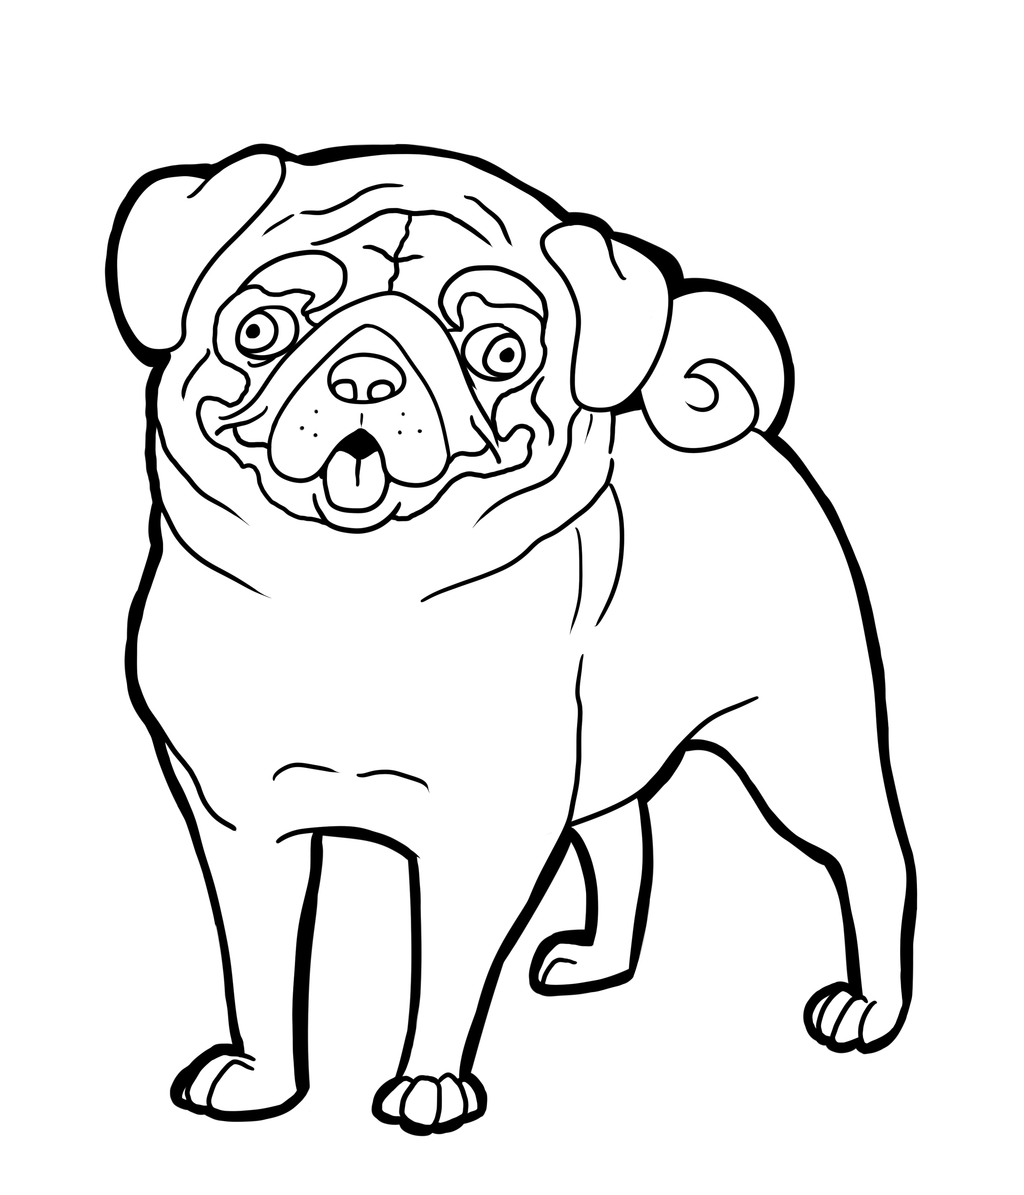 1024x1195 pug coloring pages to download and print for free pug